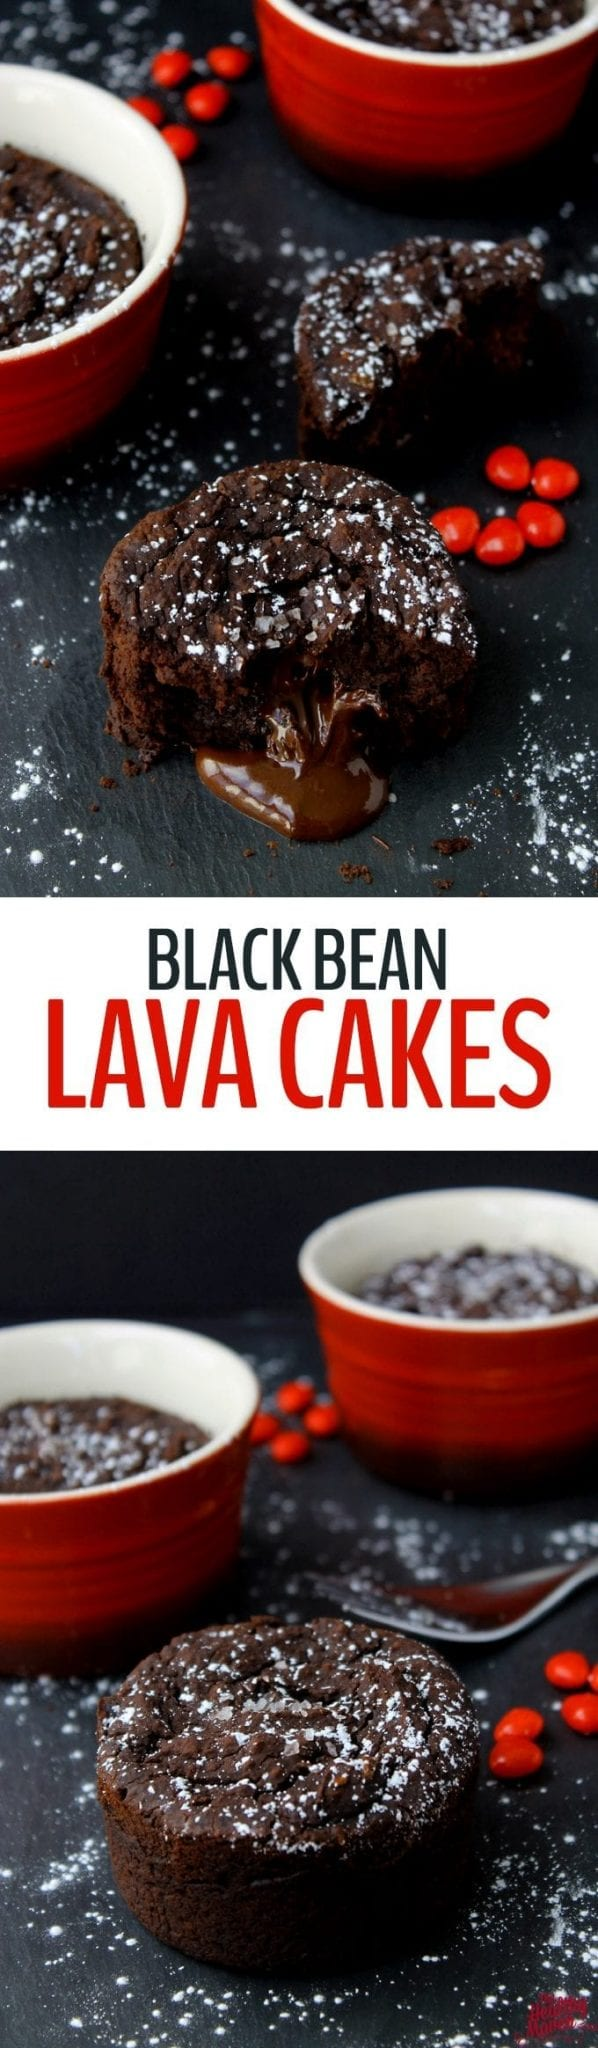 These Black Bean Lava Cakes are a healthy dessert that will trick your loved ones into eating their beans! No one will ever know these chocolate lava cakes are made from black beans!